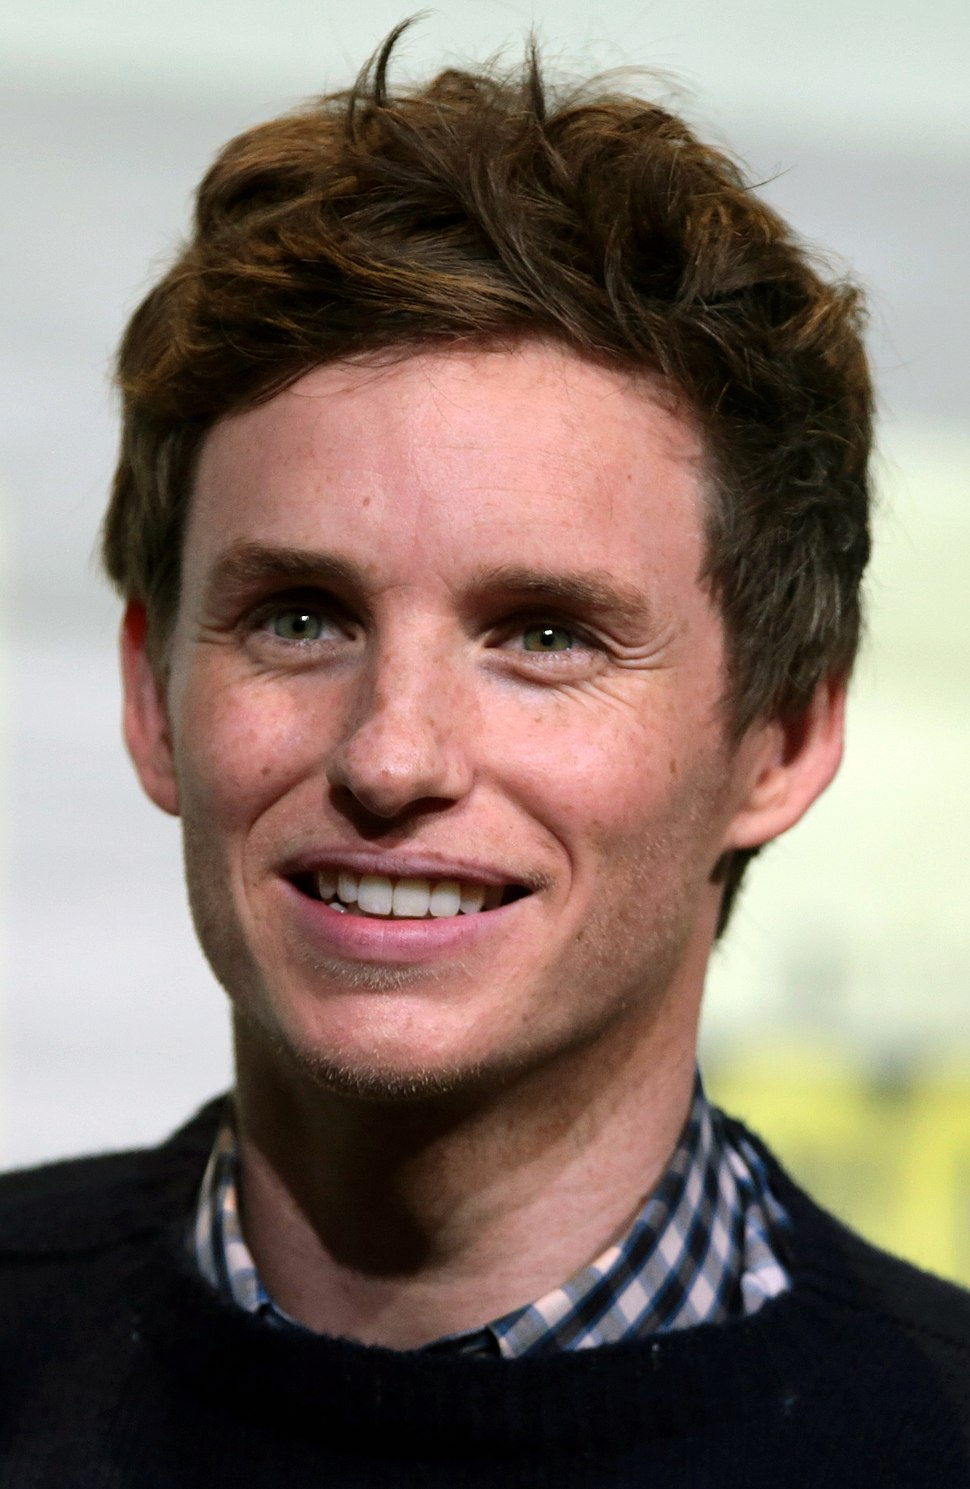 Photo of Eddie Redmayne in 2014.